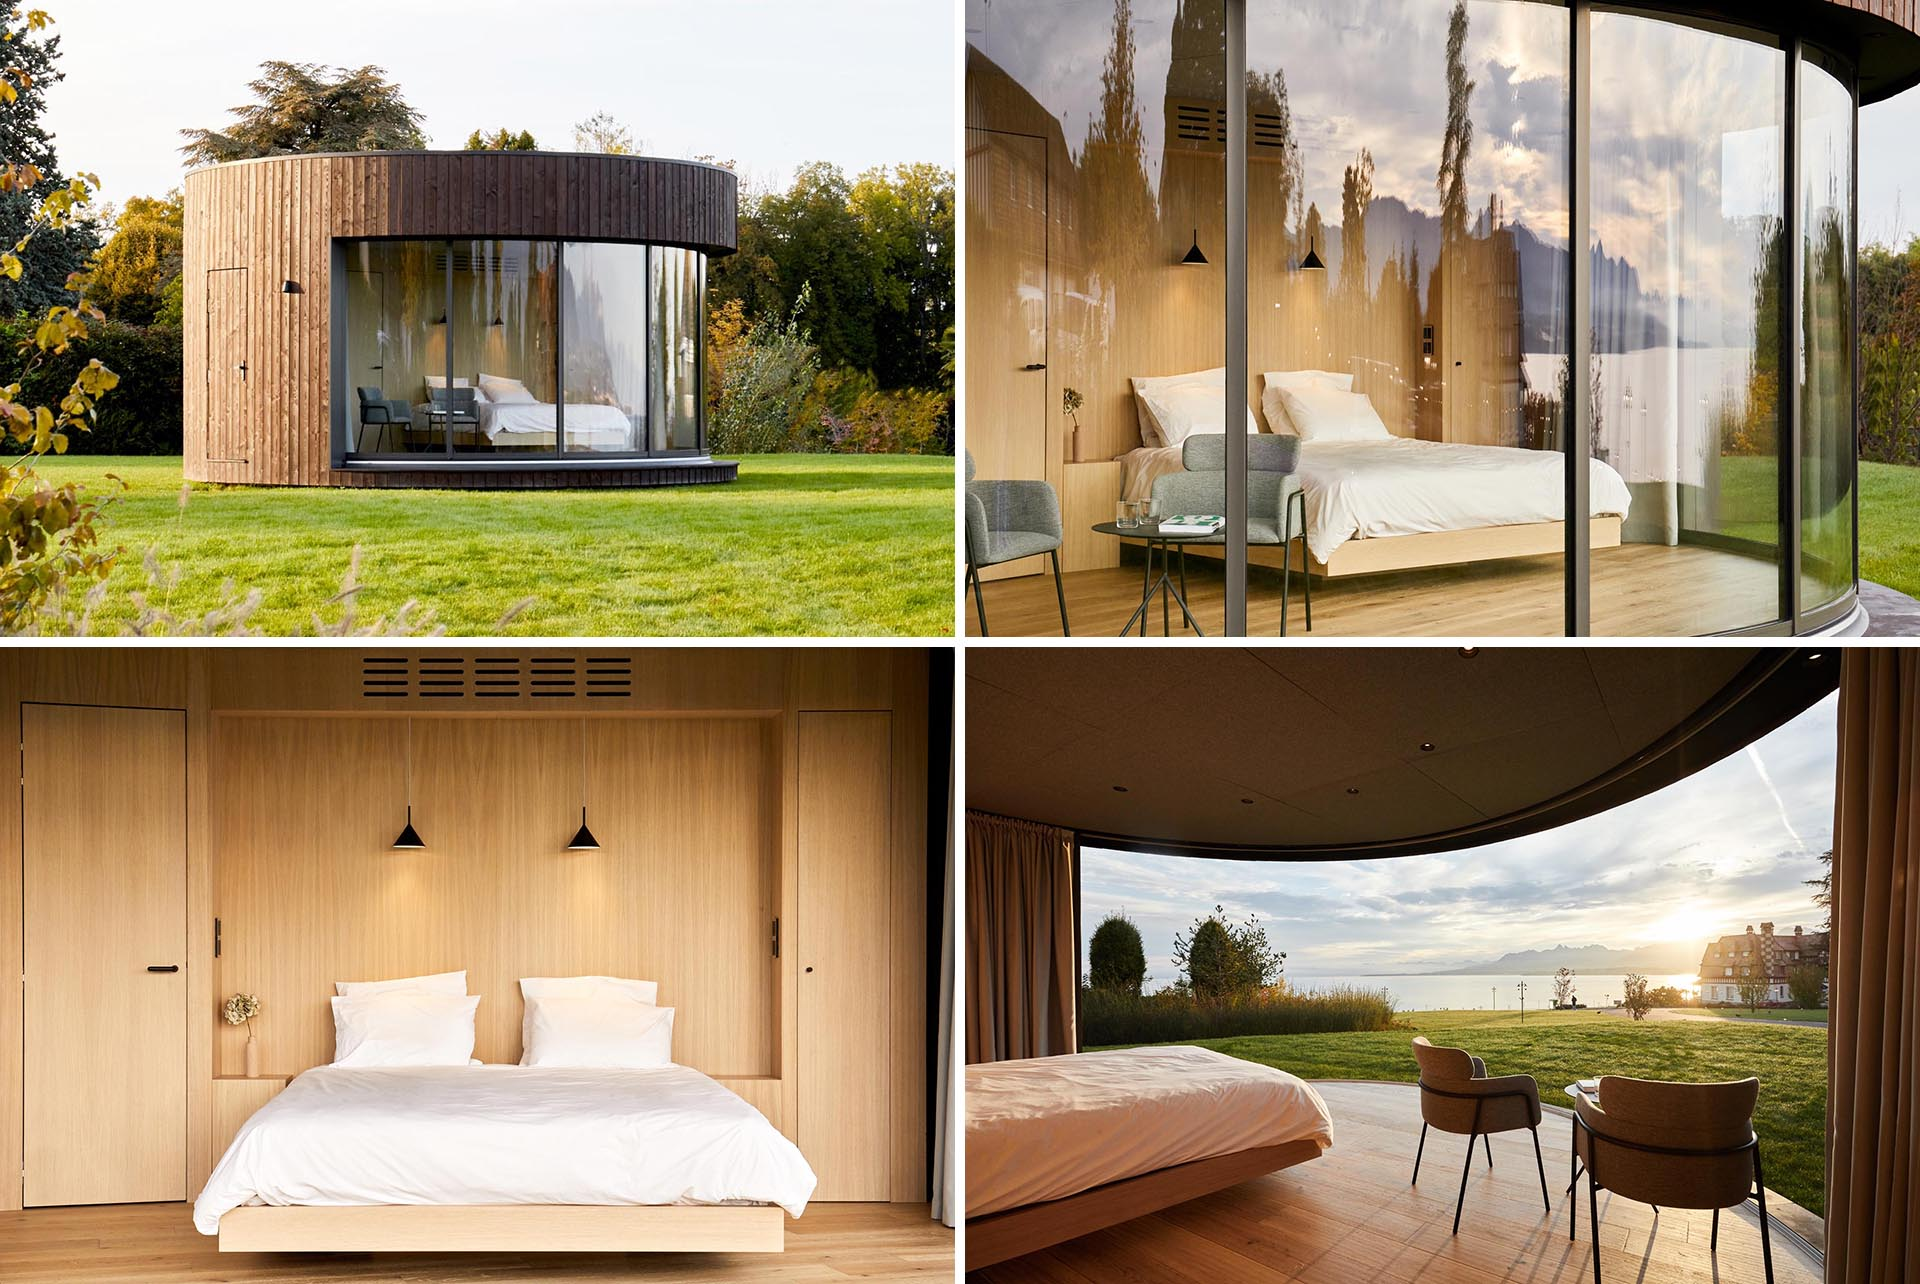 A small round cabin includes an exterior of vertical dark wood, a large glass wall that can be opened, as well as a bedroom and a bathroom.